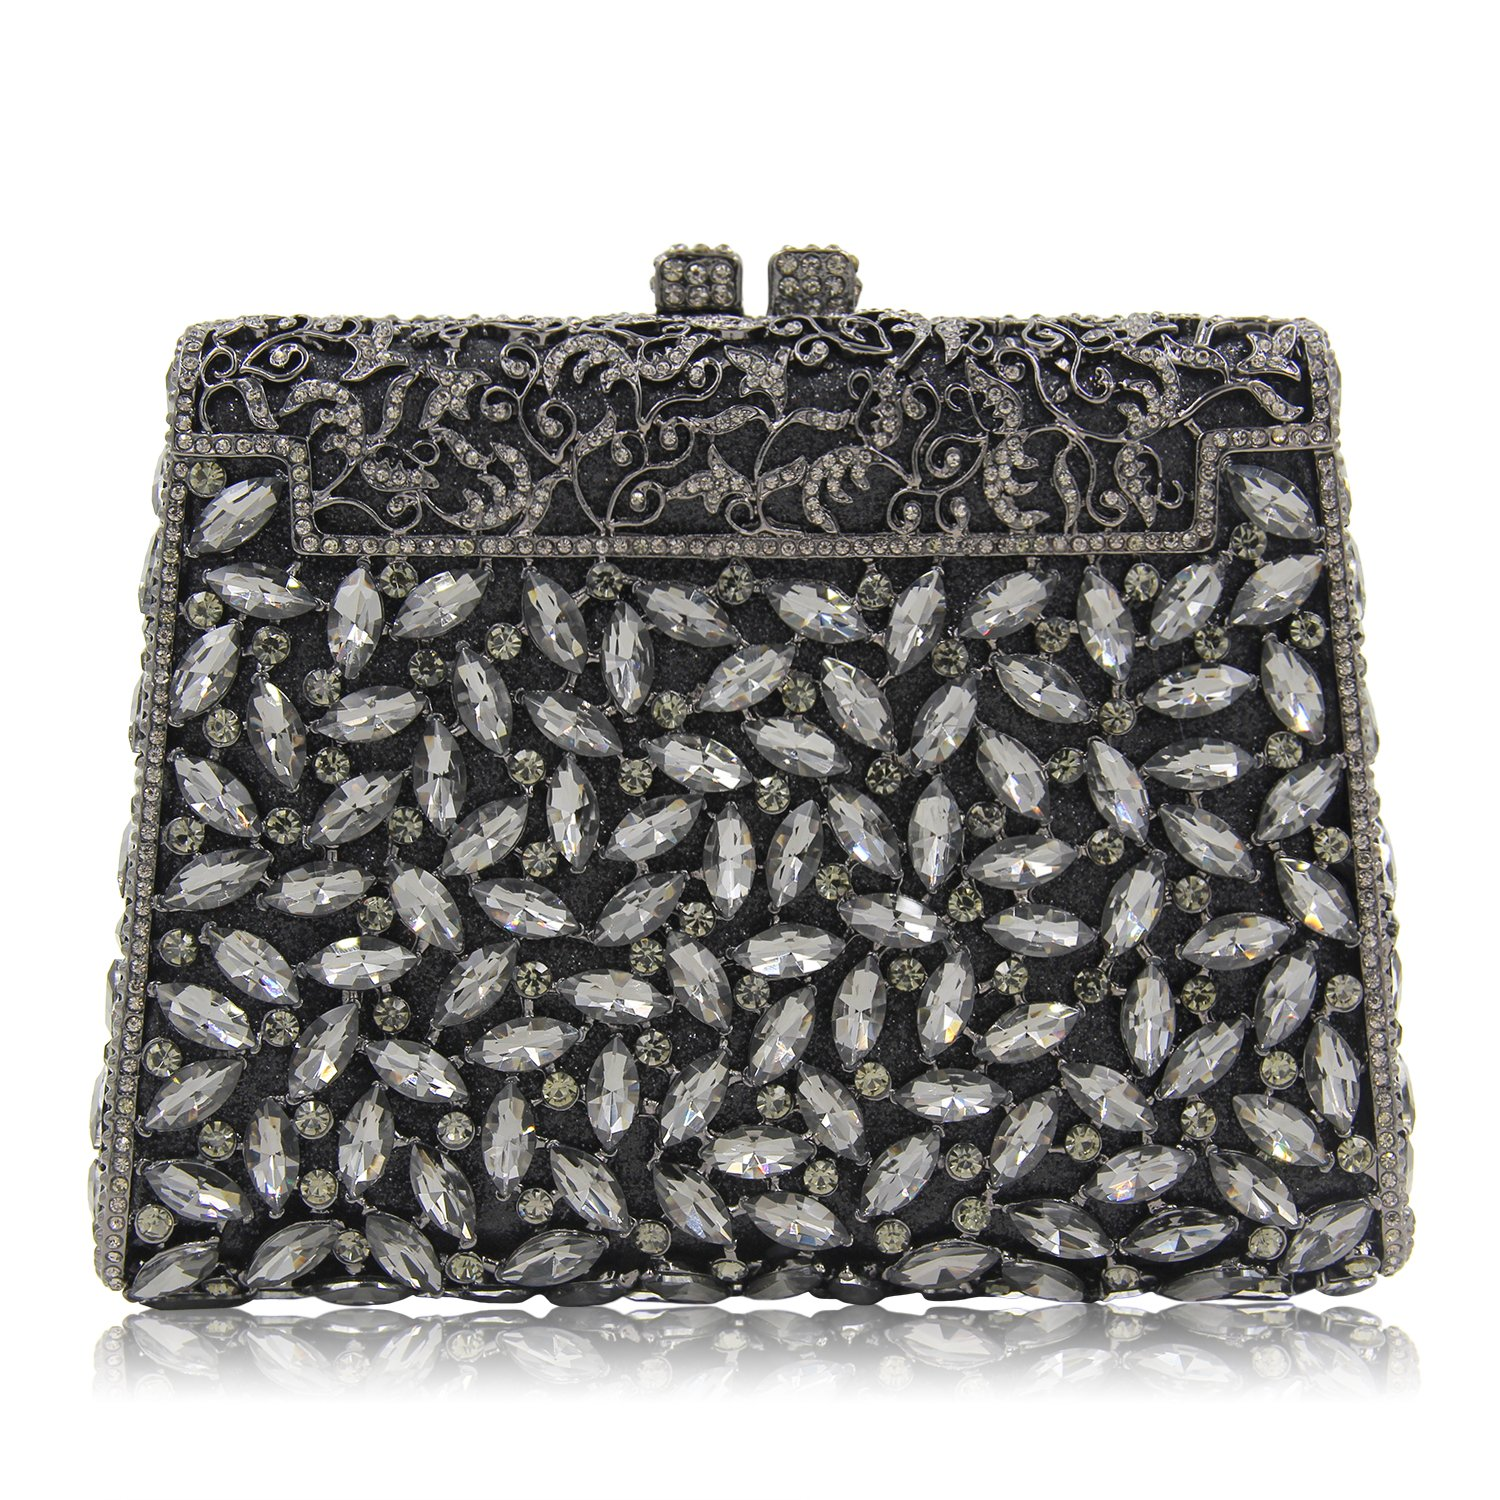 Milisente Women Evening Clutches Bag Diamond Stones Crystal Clutch Purse Handbag (Deep Grey)